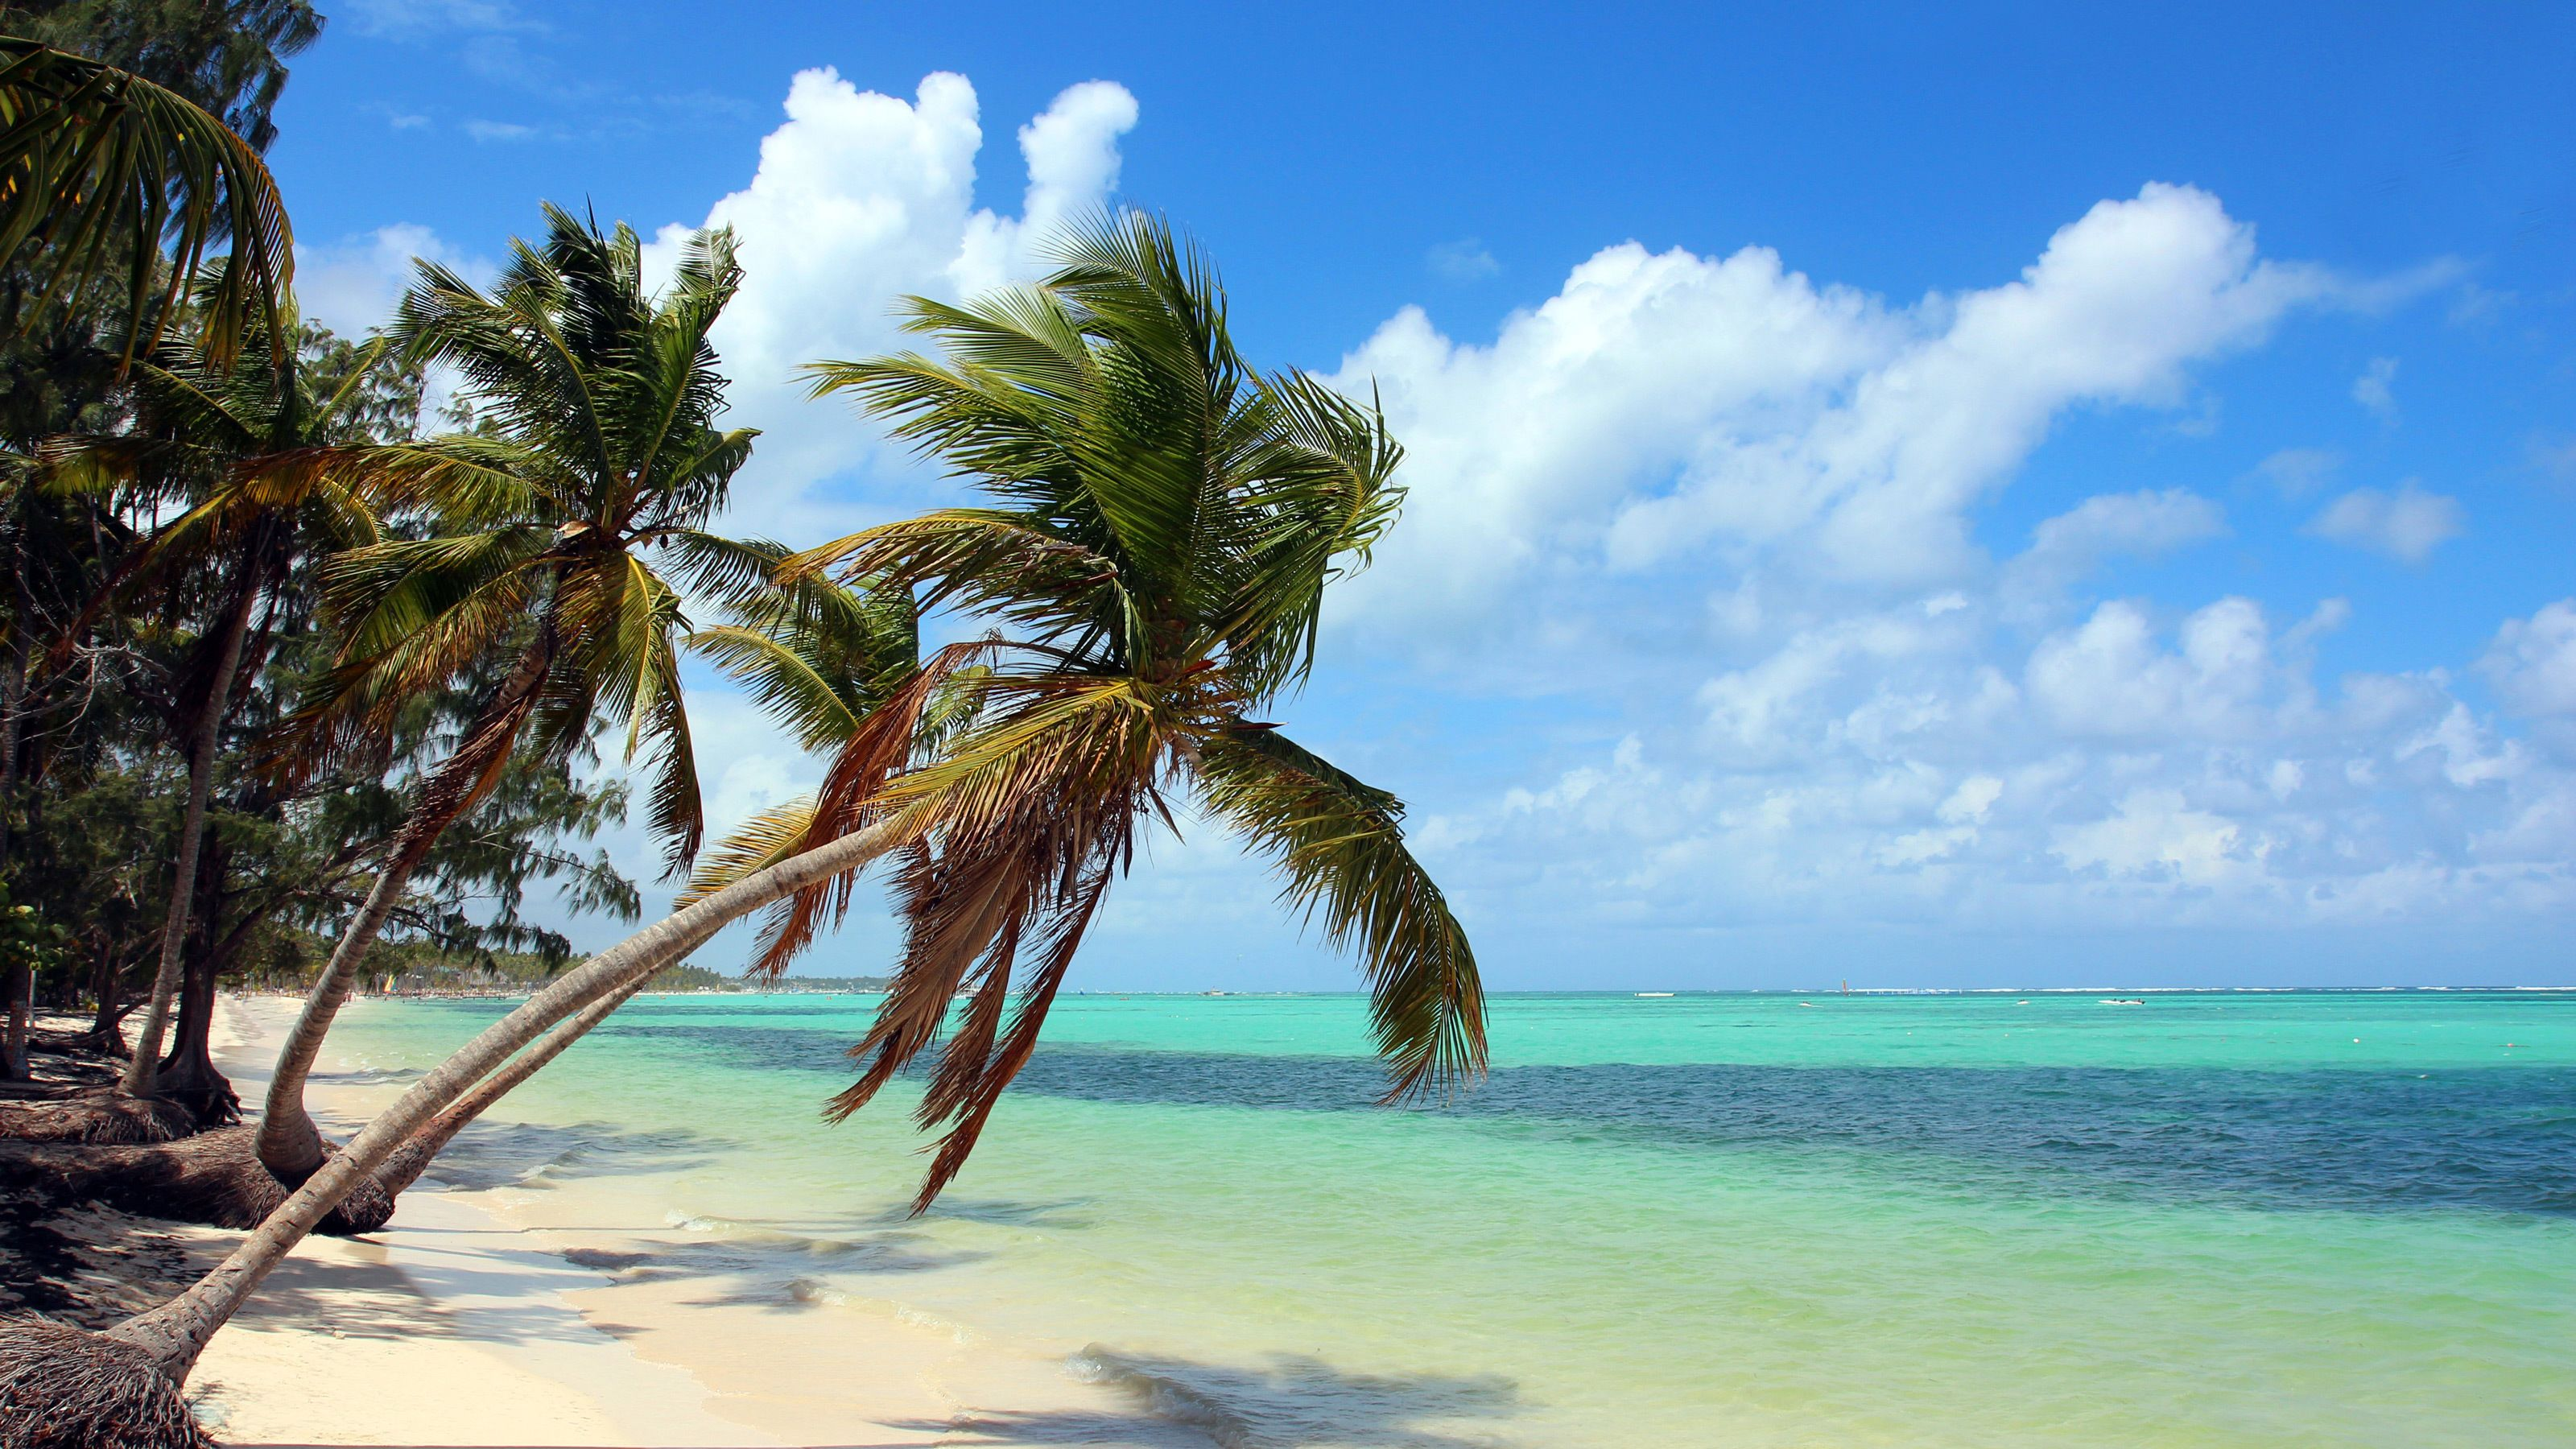 Palm trees on beach in Bahamas